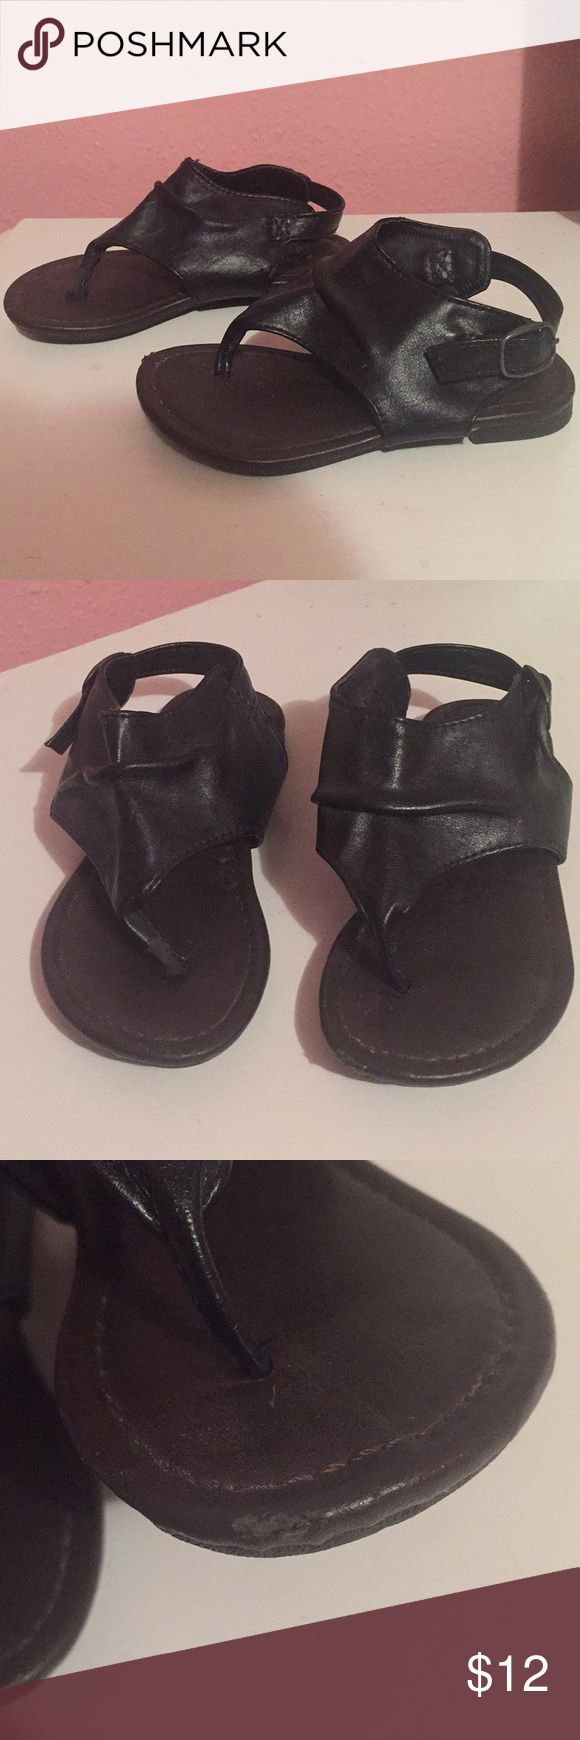 Toddler Black Sandals Other than the mark shown in picture it's in good condition  Size 7 Max & Co. Shoes Sandals & Flip Flops